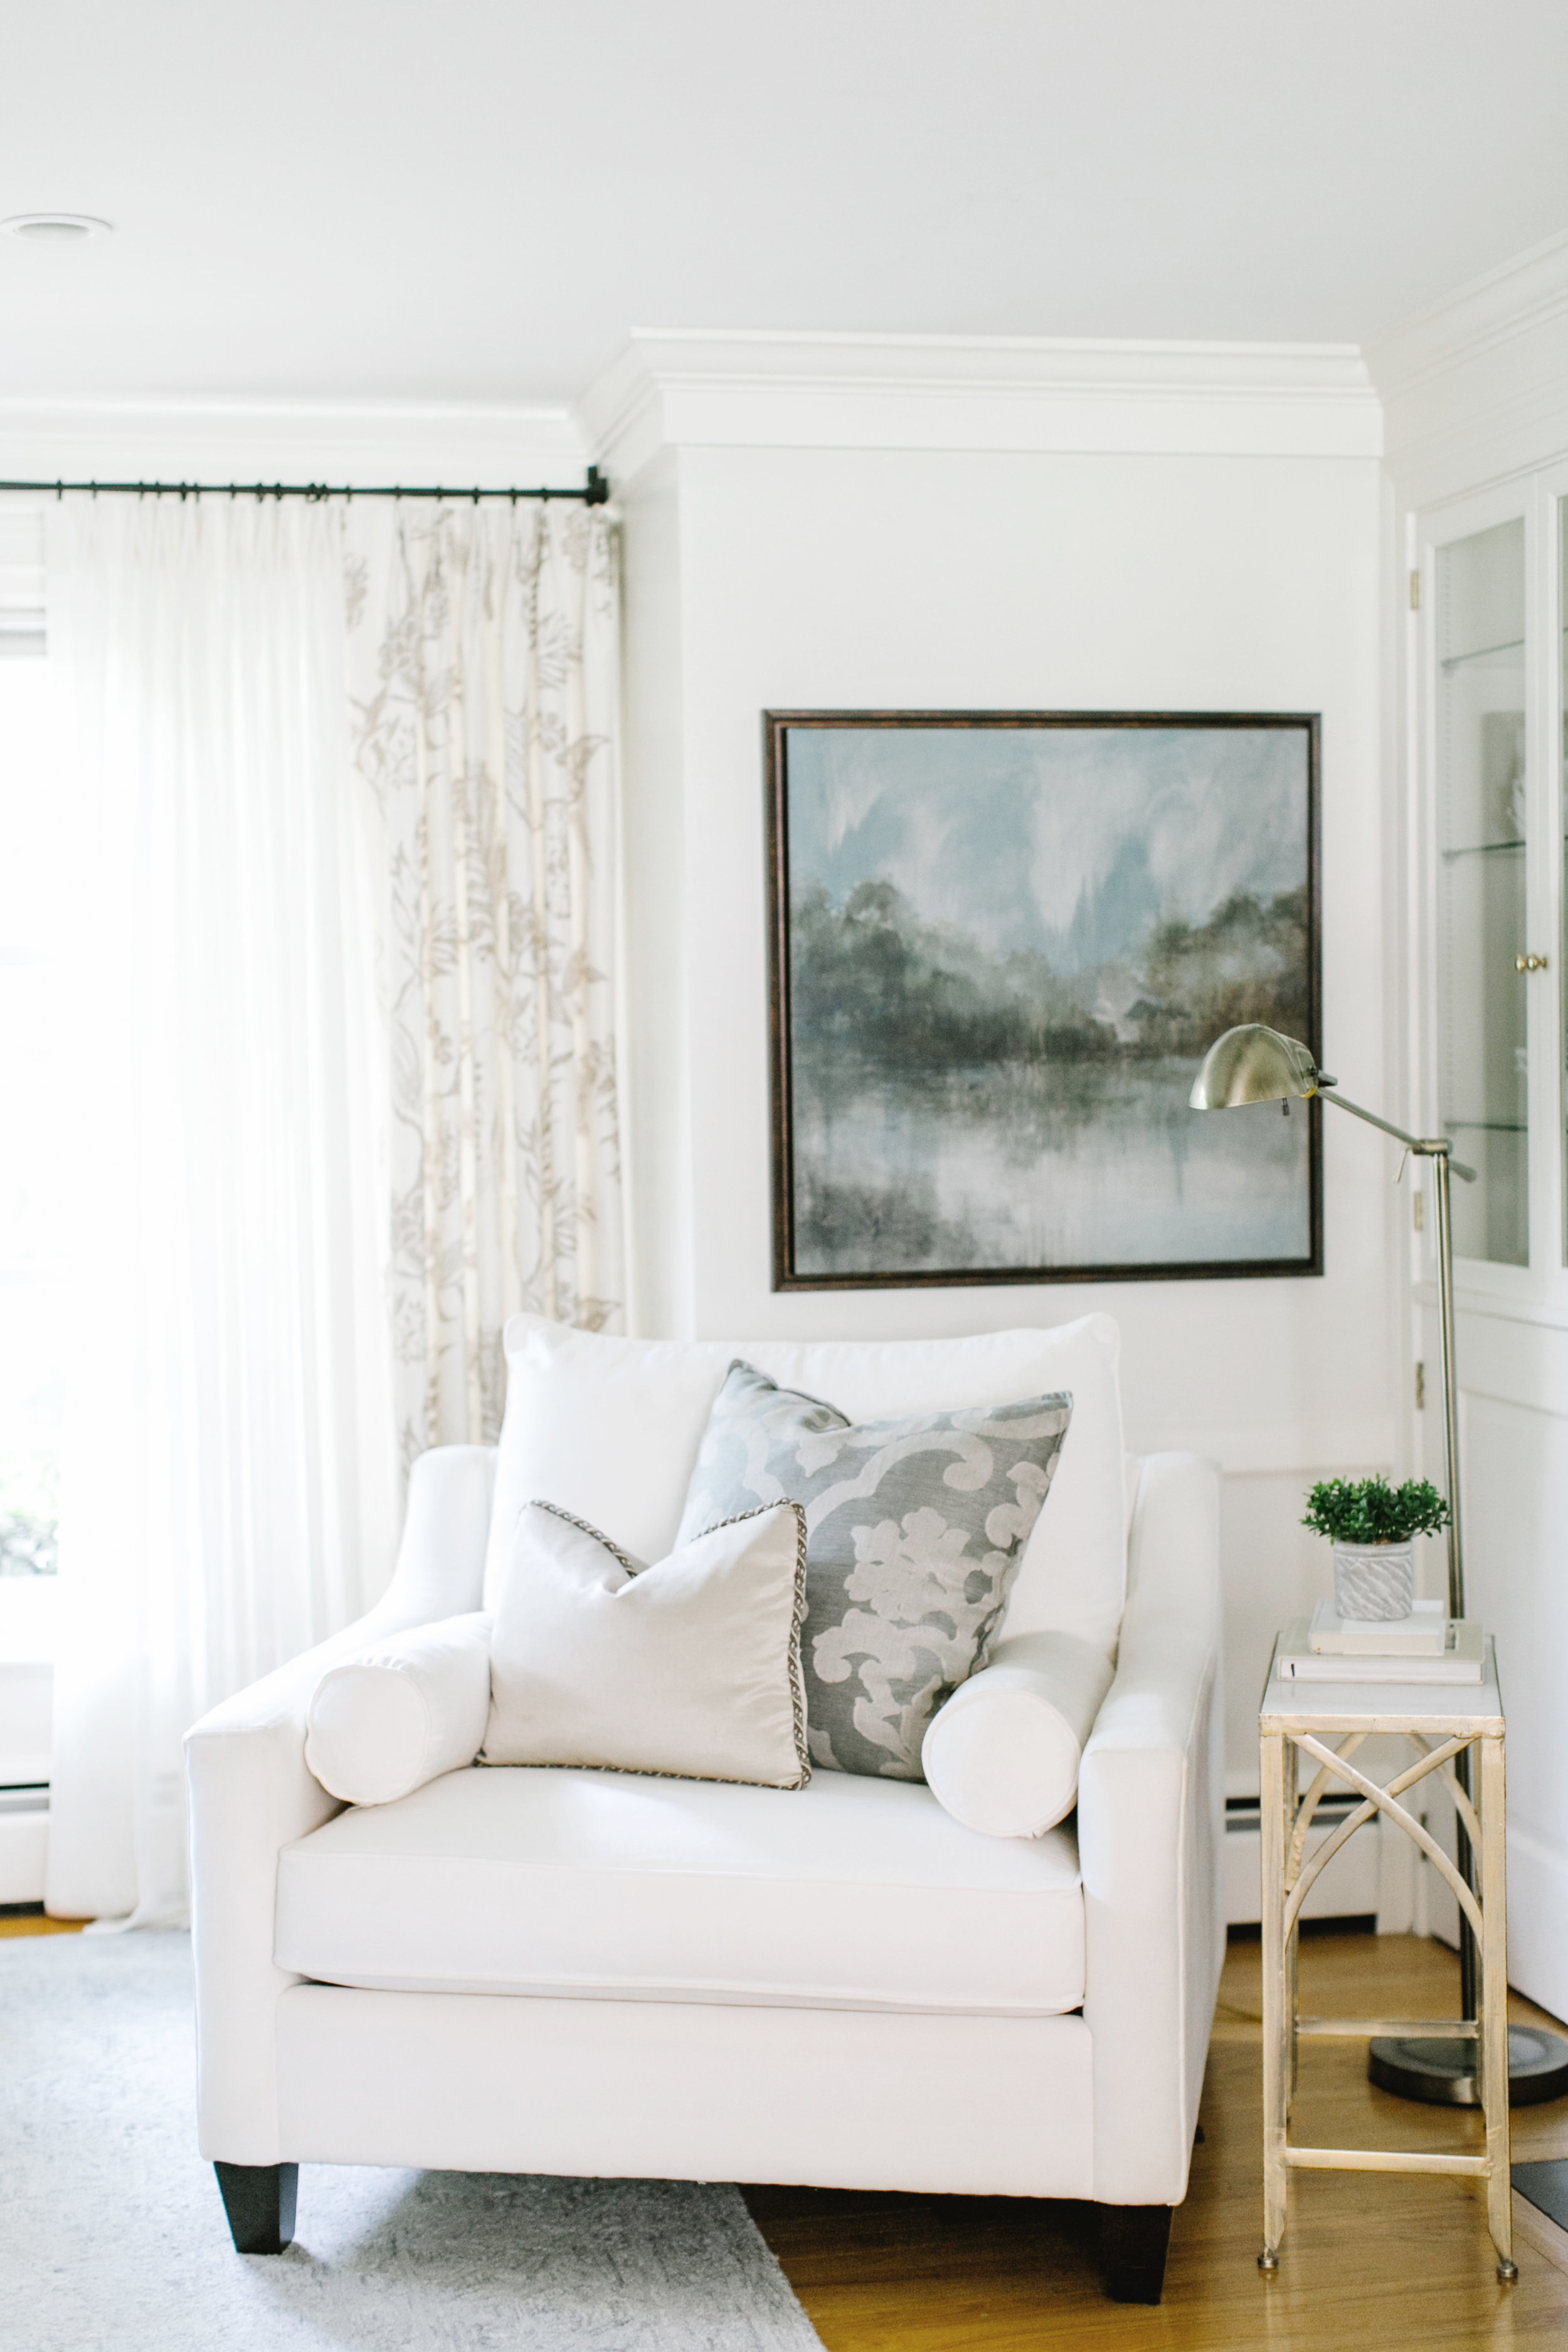 Luxurious fabrics bring style to a living room